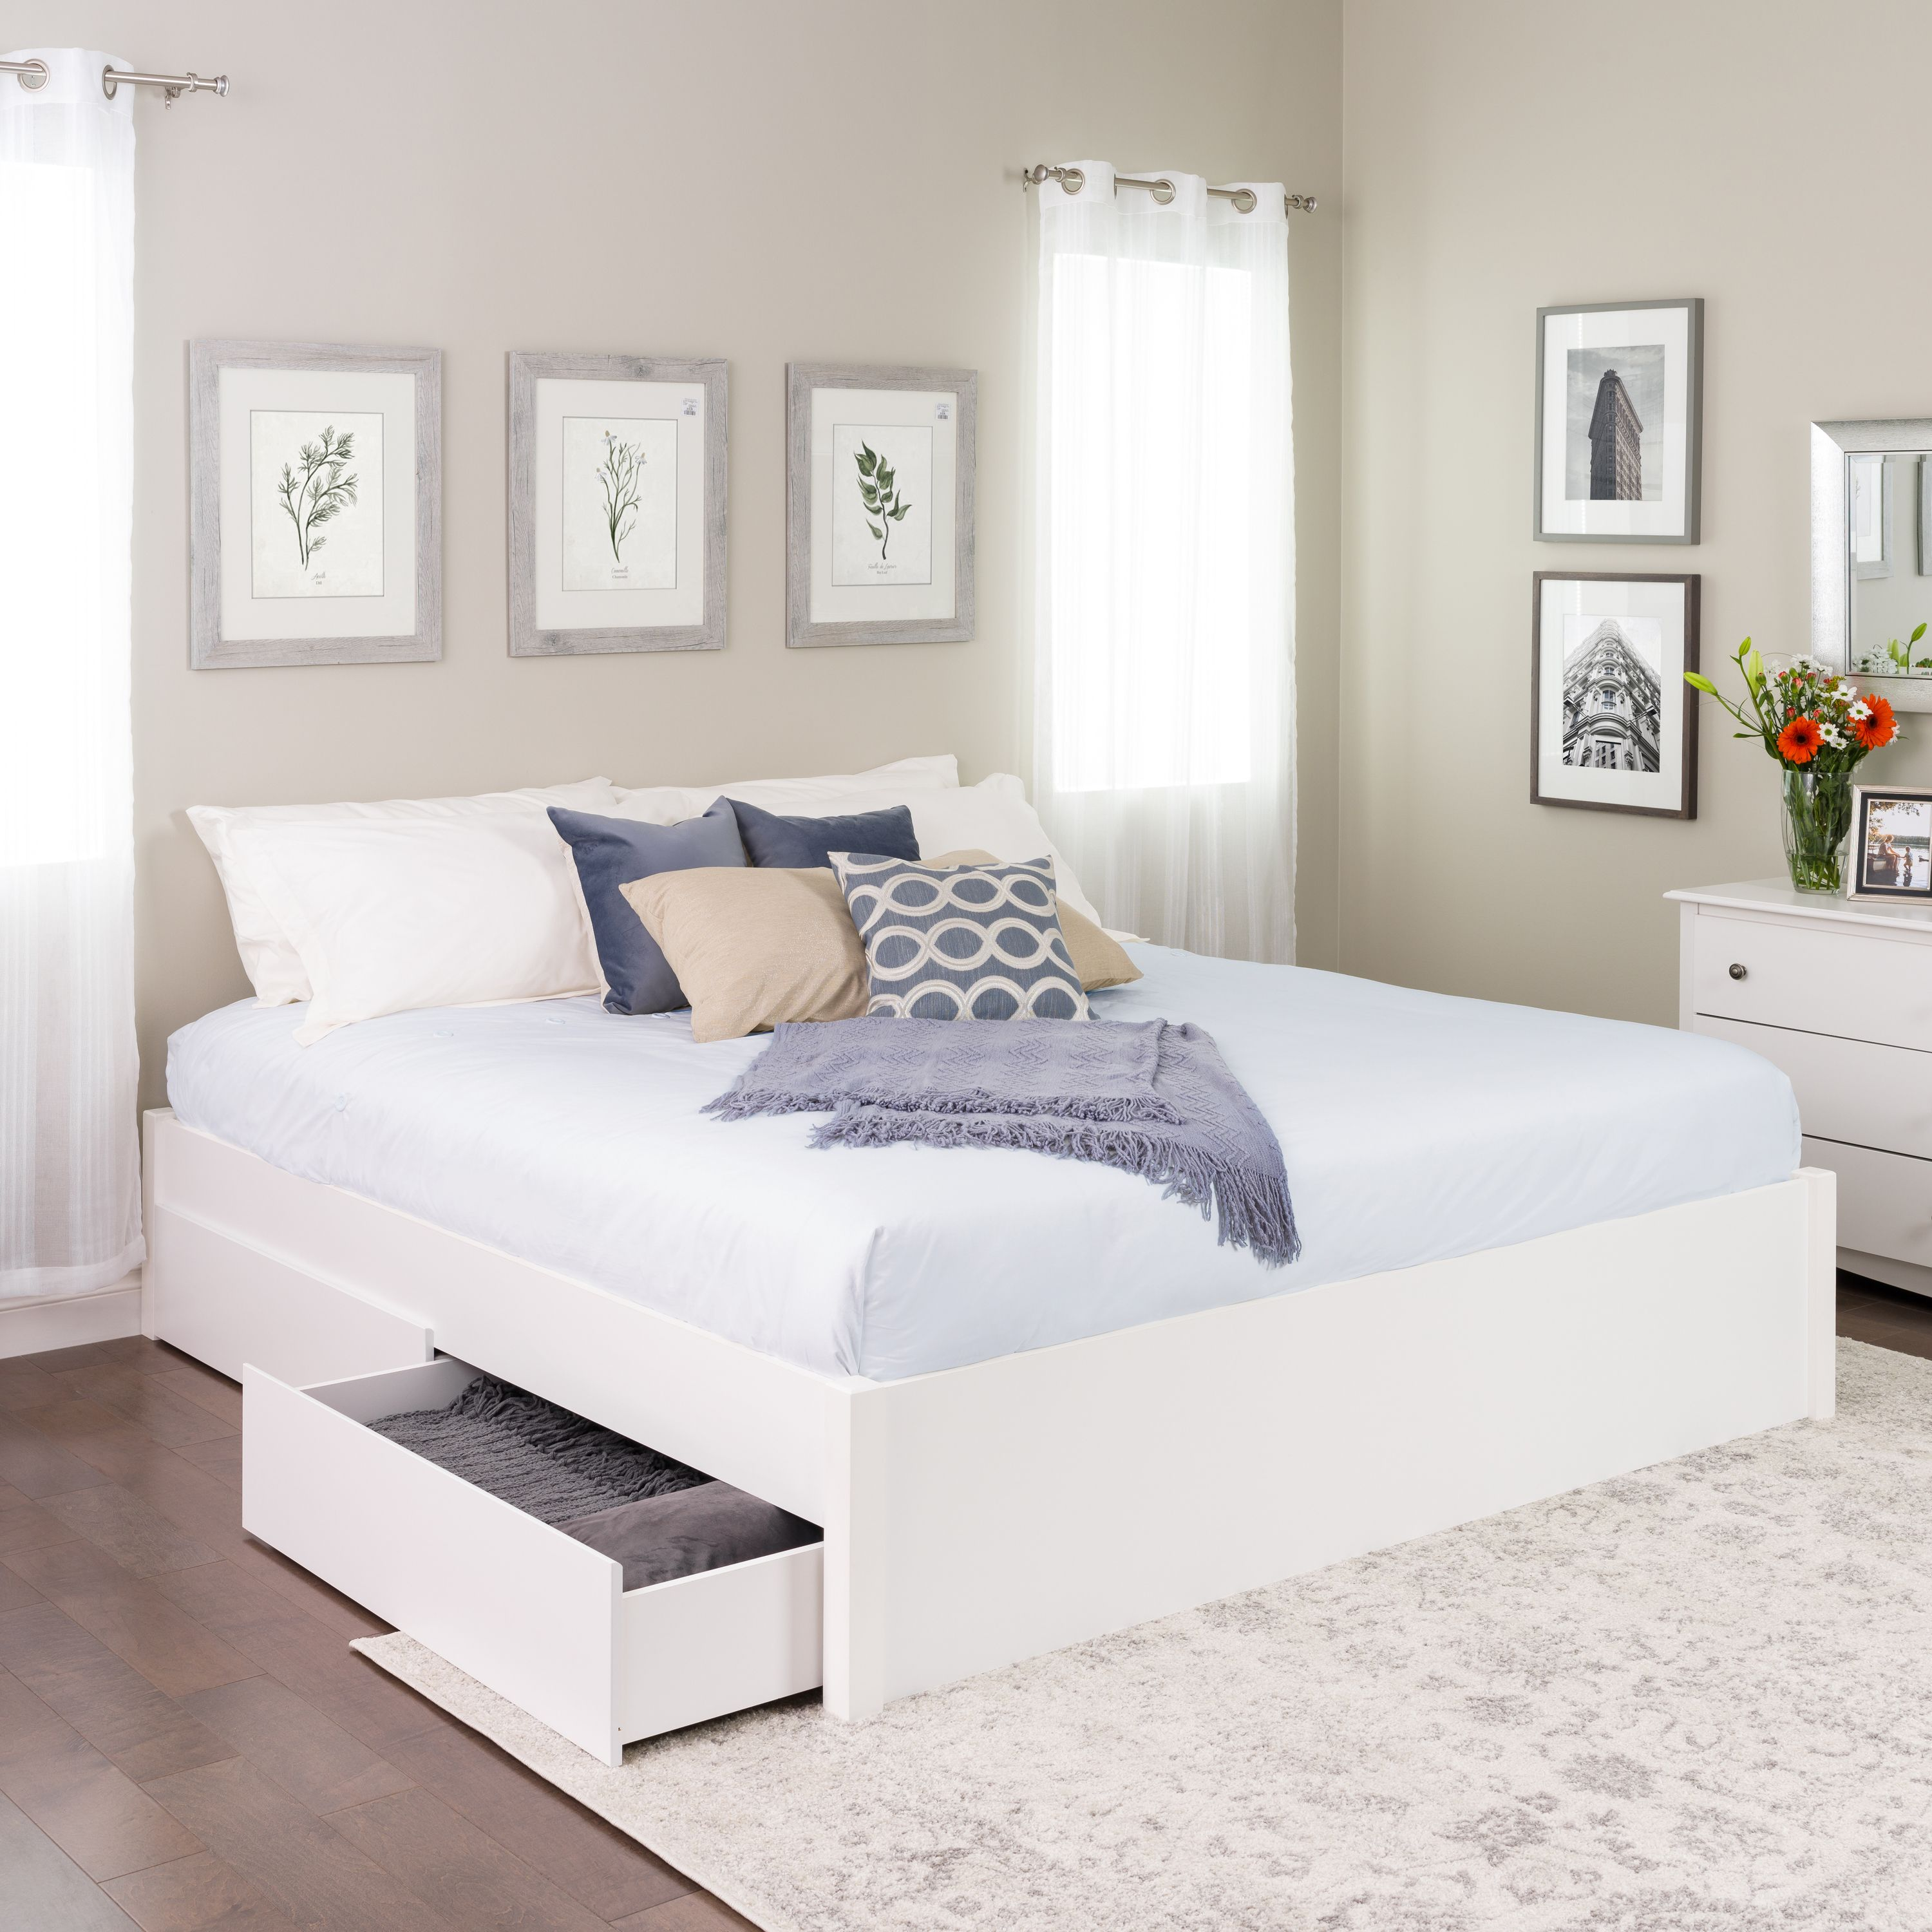 Prepac King Select 4-Post Platform Bed with 4 Drawers, White